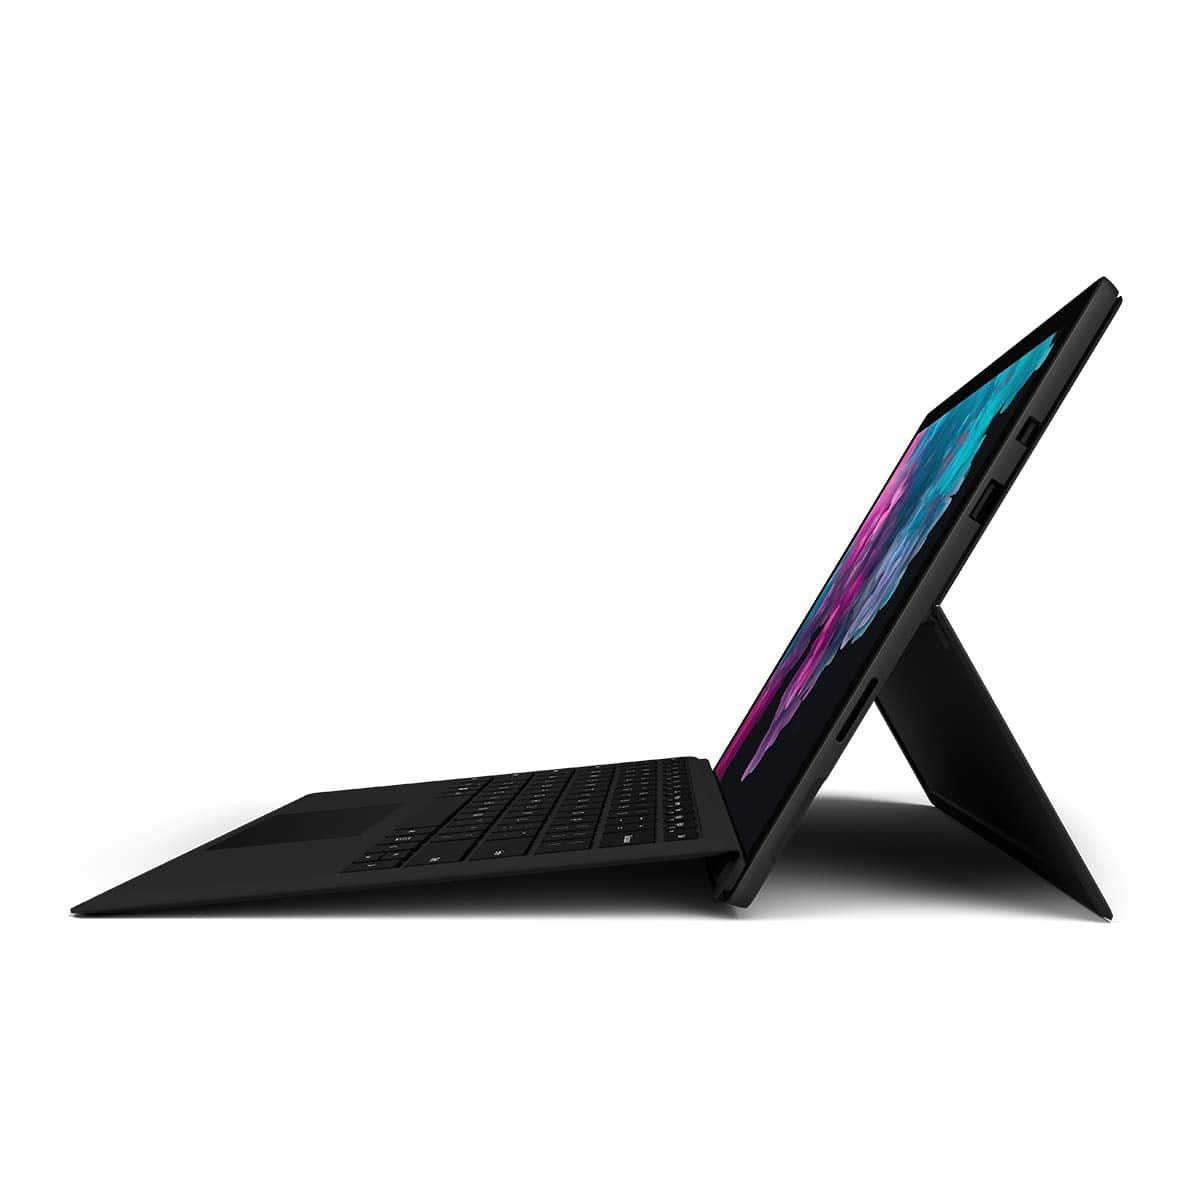 Microsoft Surface Pro 6, 2-in-1 Laptop, Intel Core-i5-8250U, 12.3 Inch, 256GB SSD, 8GB RAM, Intel UHD Graphics 620, Windows 10, No Keyboard, Black [Intl. Version]